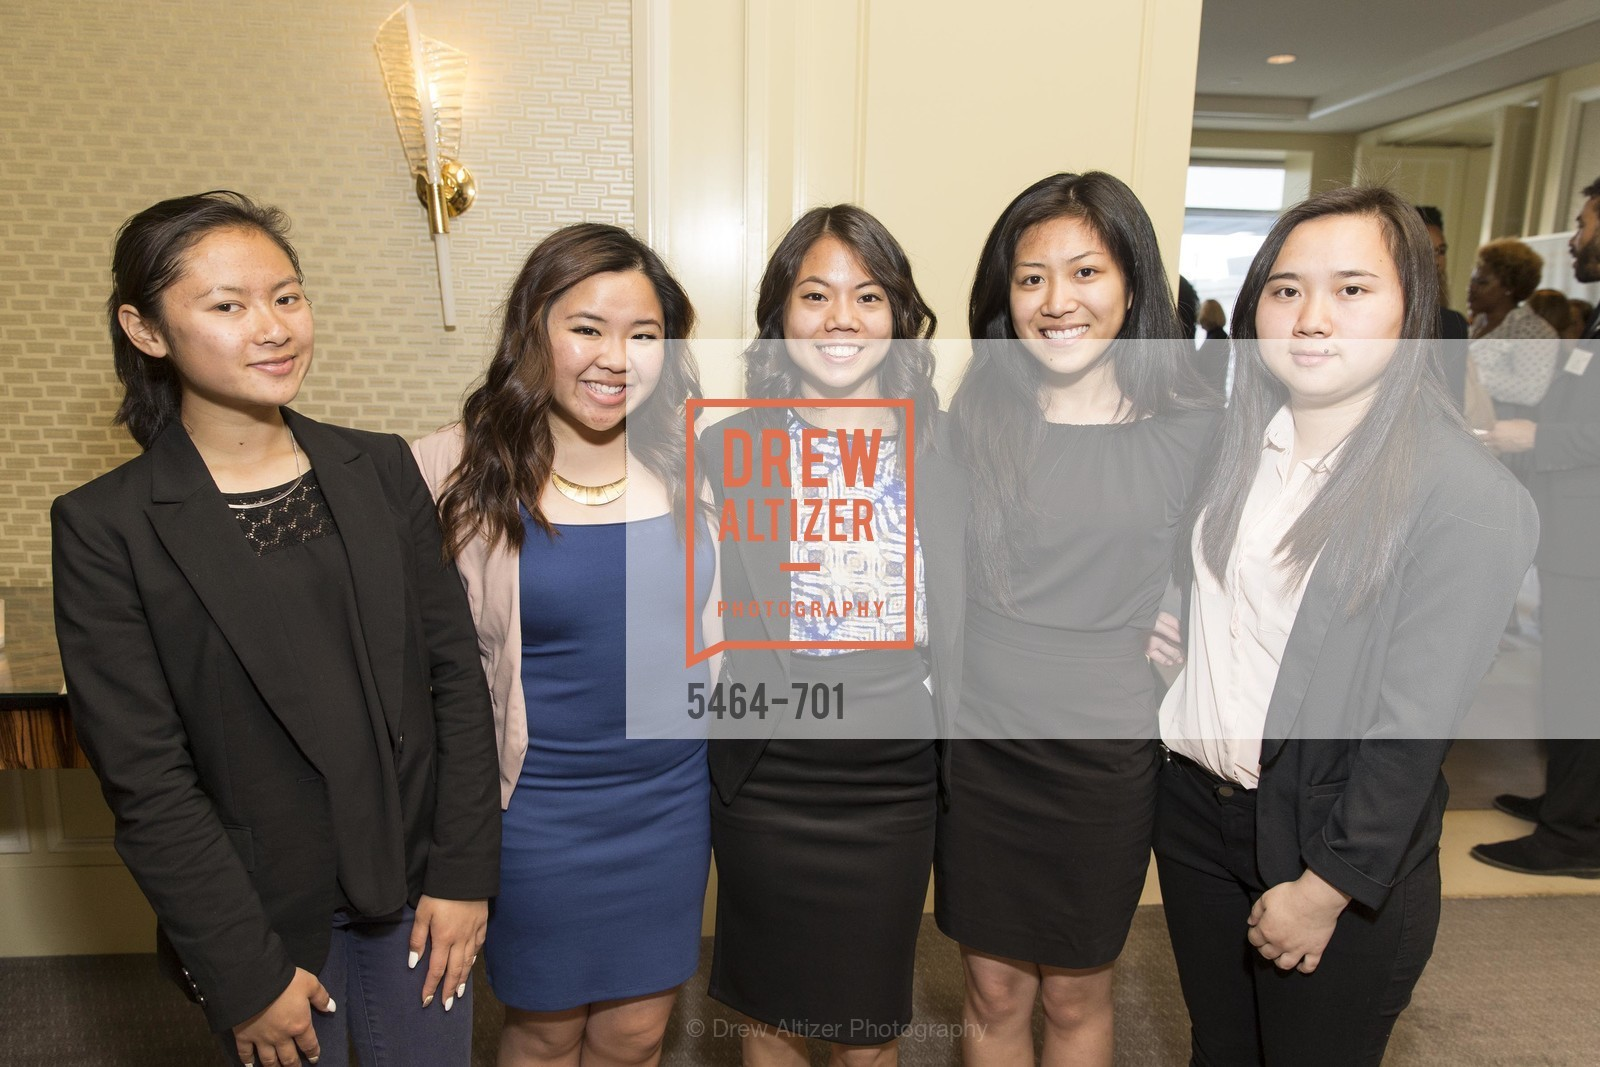 Sherry Liang, Wendy La, Ky Jia Pham, Crystal Huang, Hong Hong Wu, SUMMER SEARCH San Francisco 25th Anniversary, US, May 7th, 2015,Drew Altizer, Drew Altizer Photography, full-service event agency, private events, San Francisco photographer, photographer California